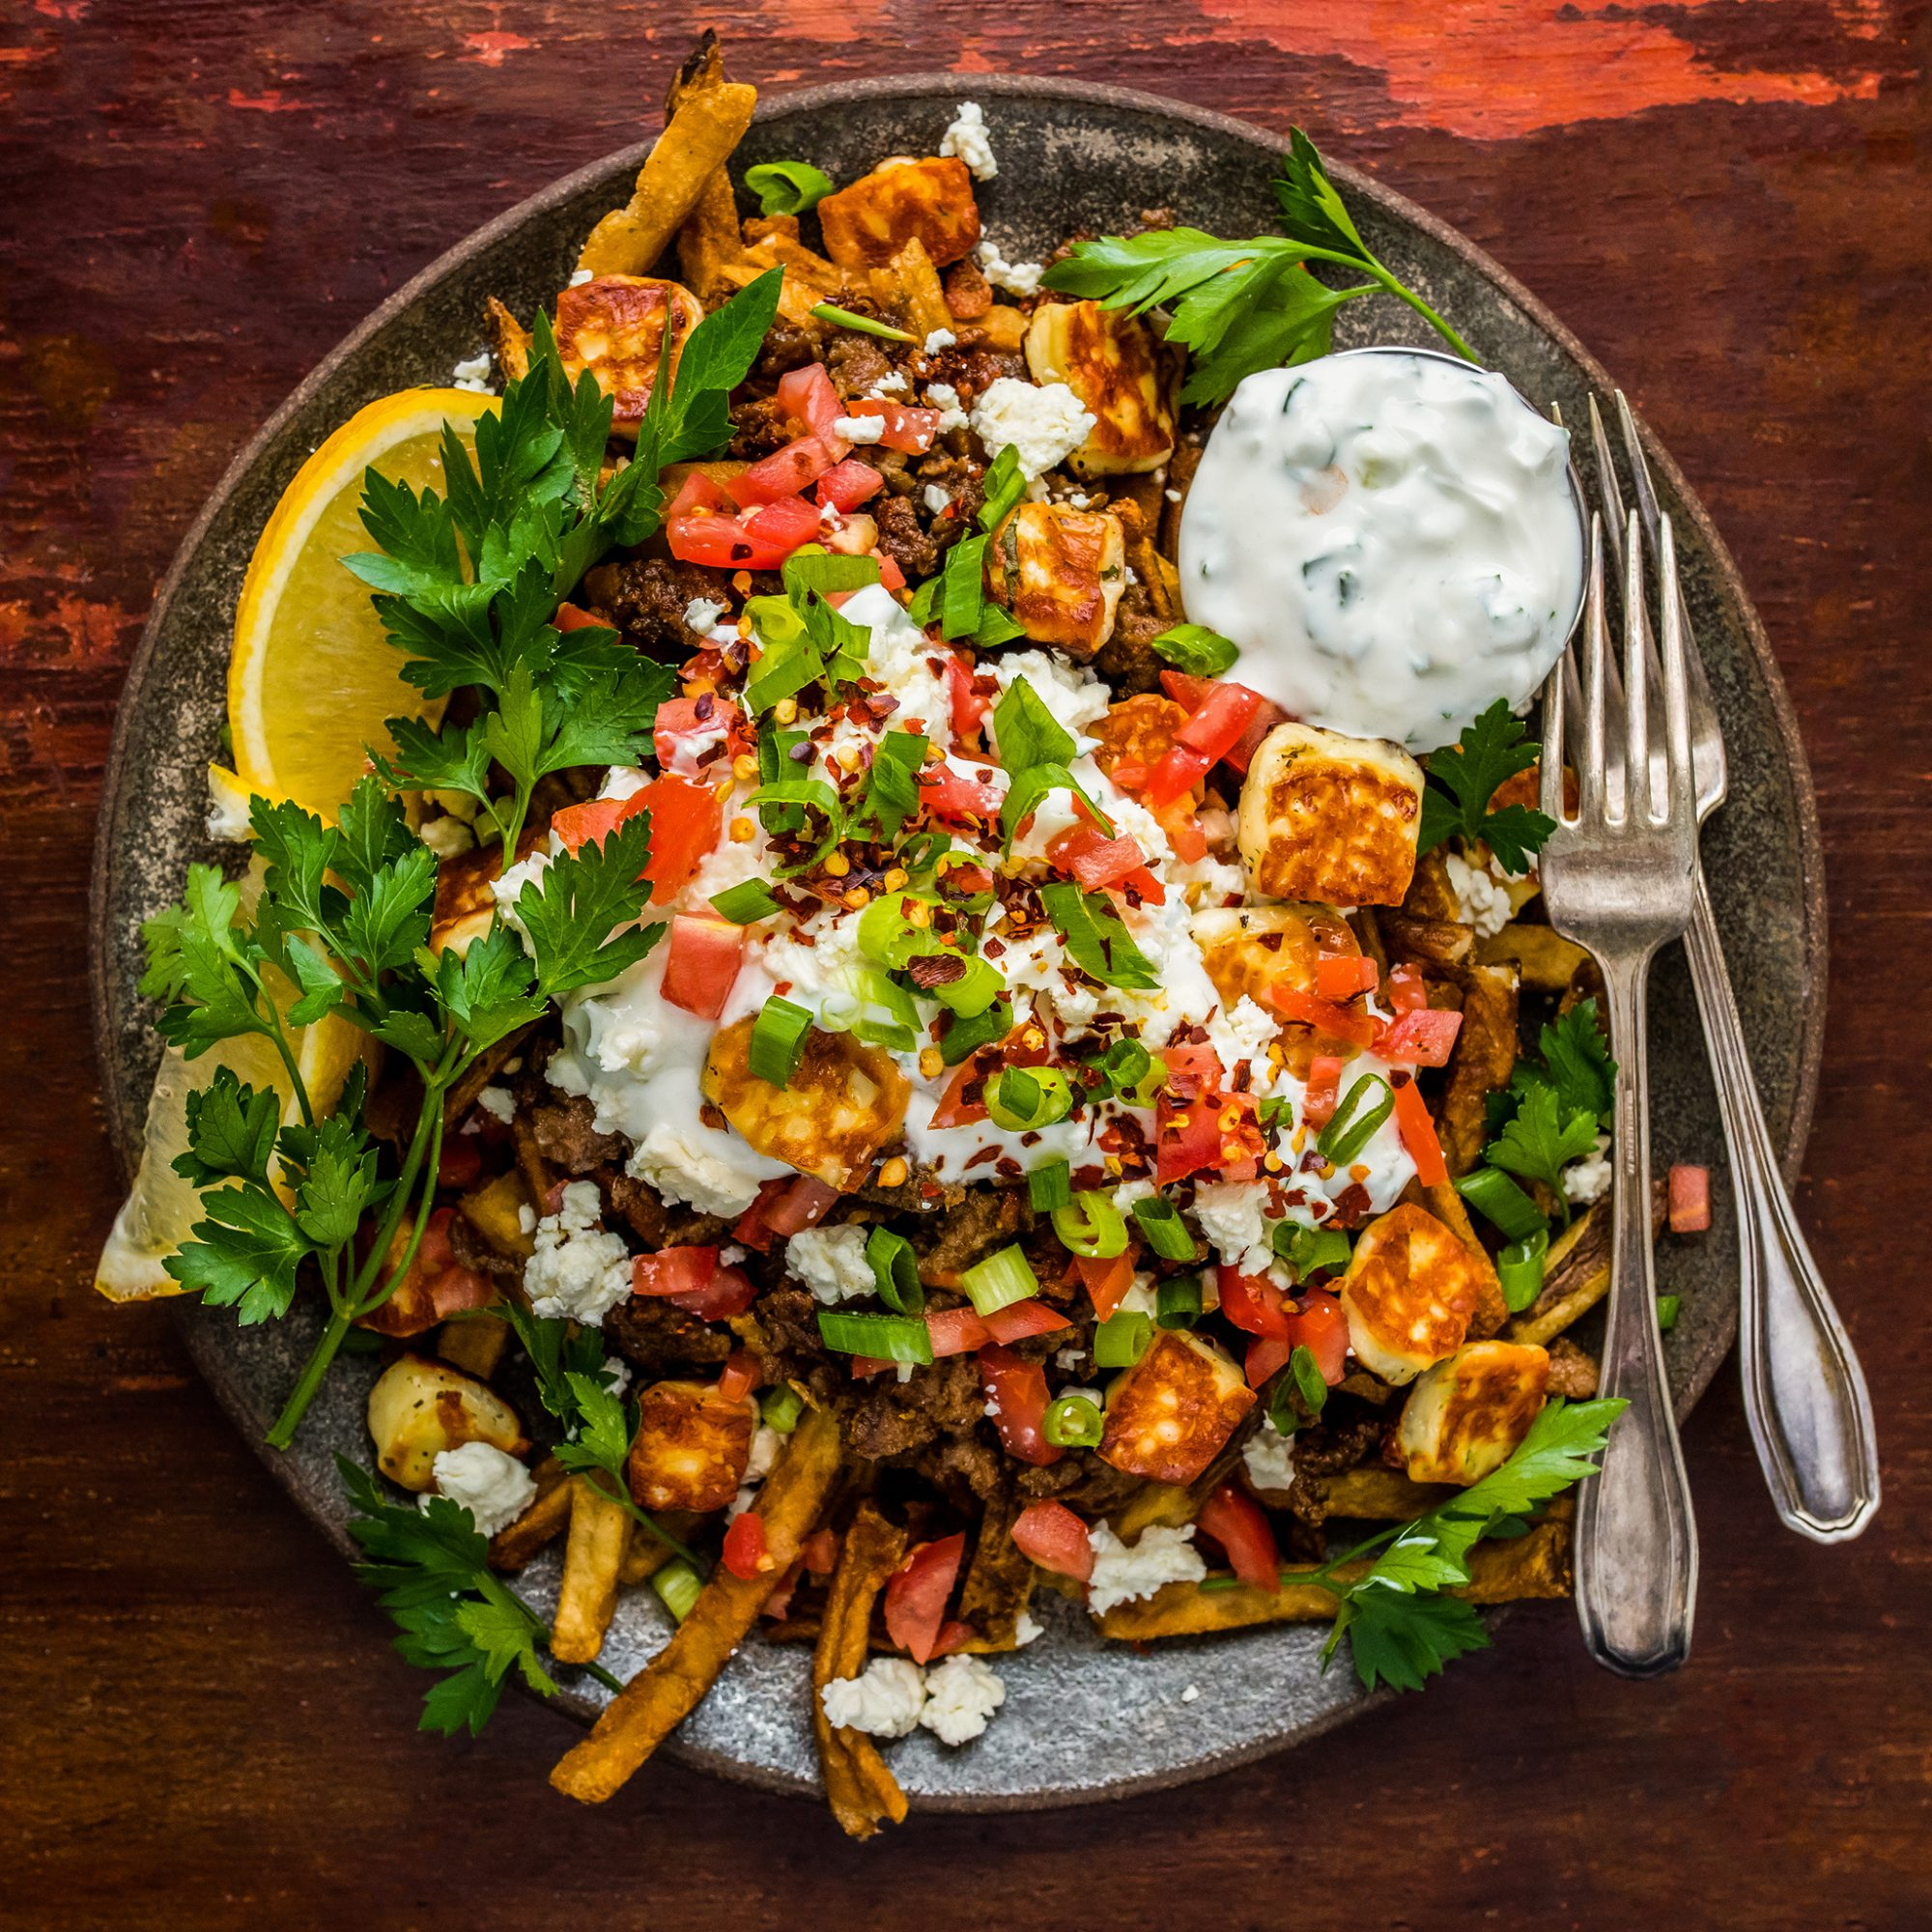 Loaded Greek Fries with Halloumi, Spiced Lamb, and Tzatziki